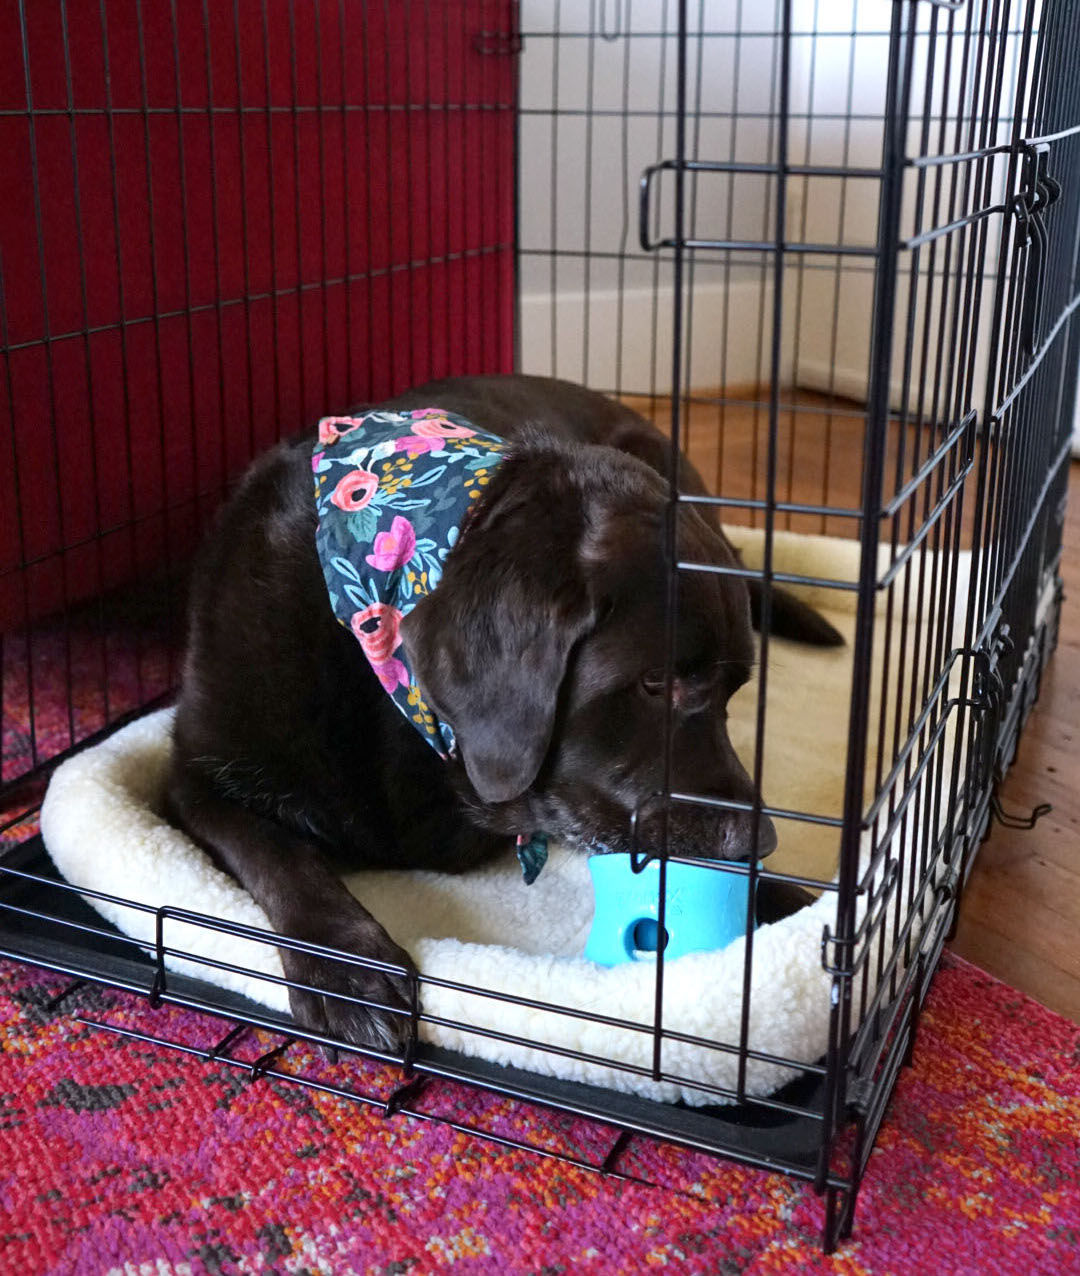 canine enrichment in crate